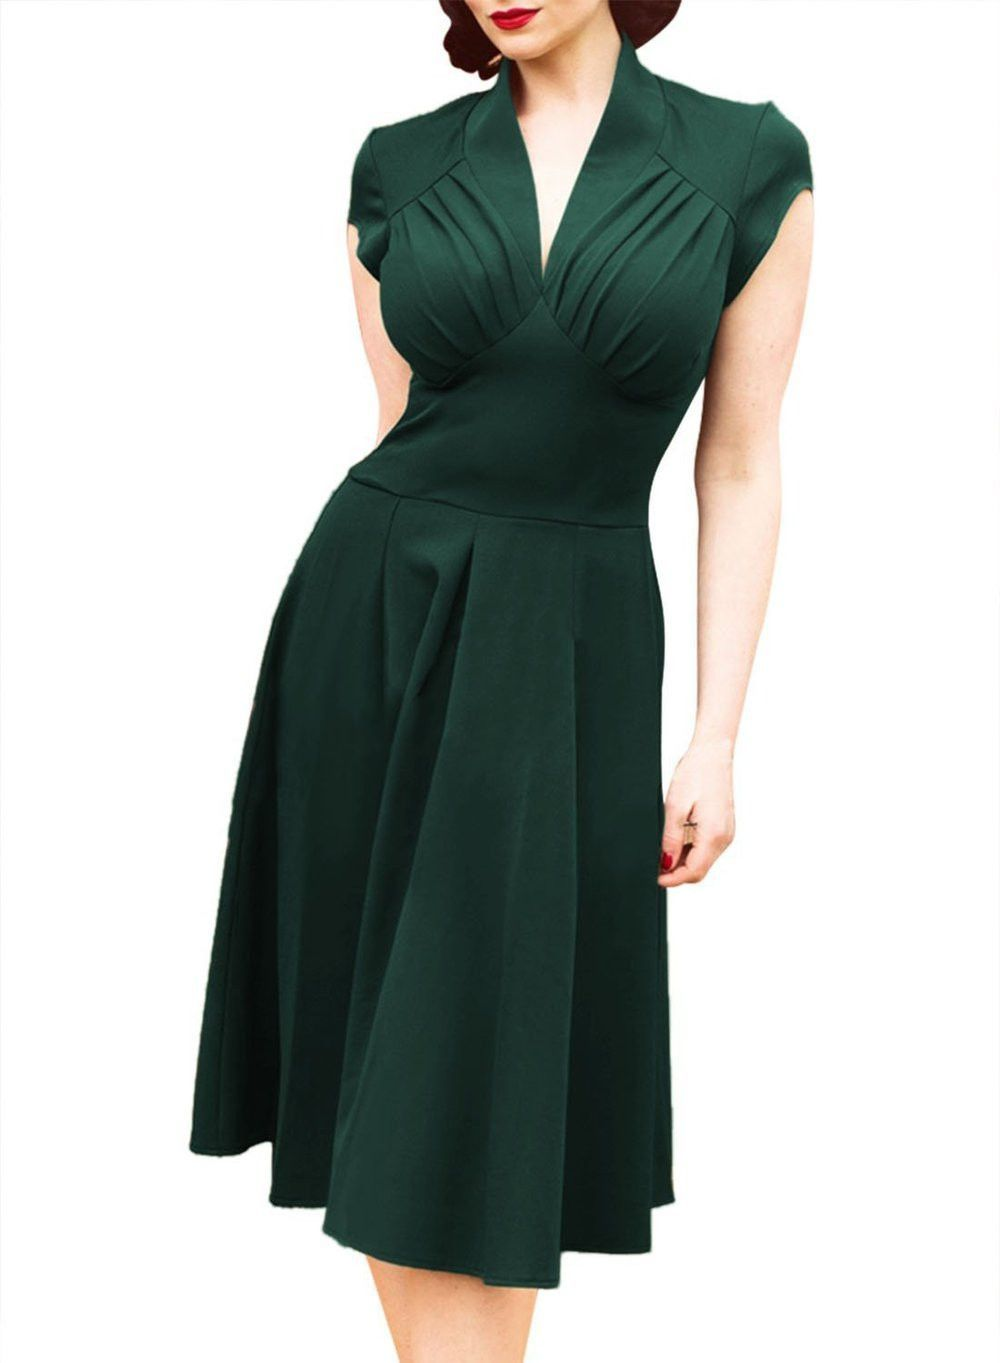 Dress s style colors s vintage rockabilly s clothing retro